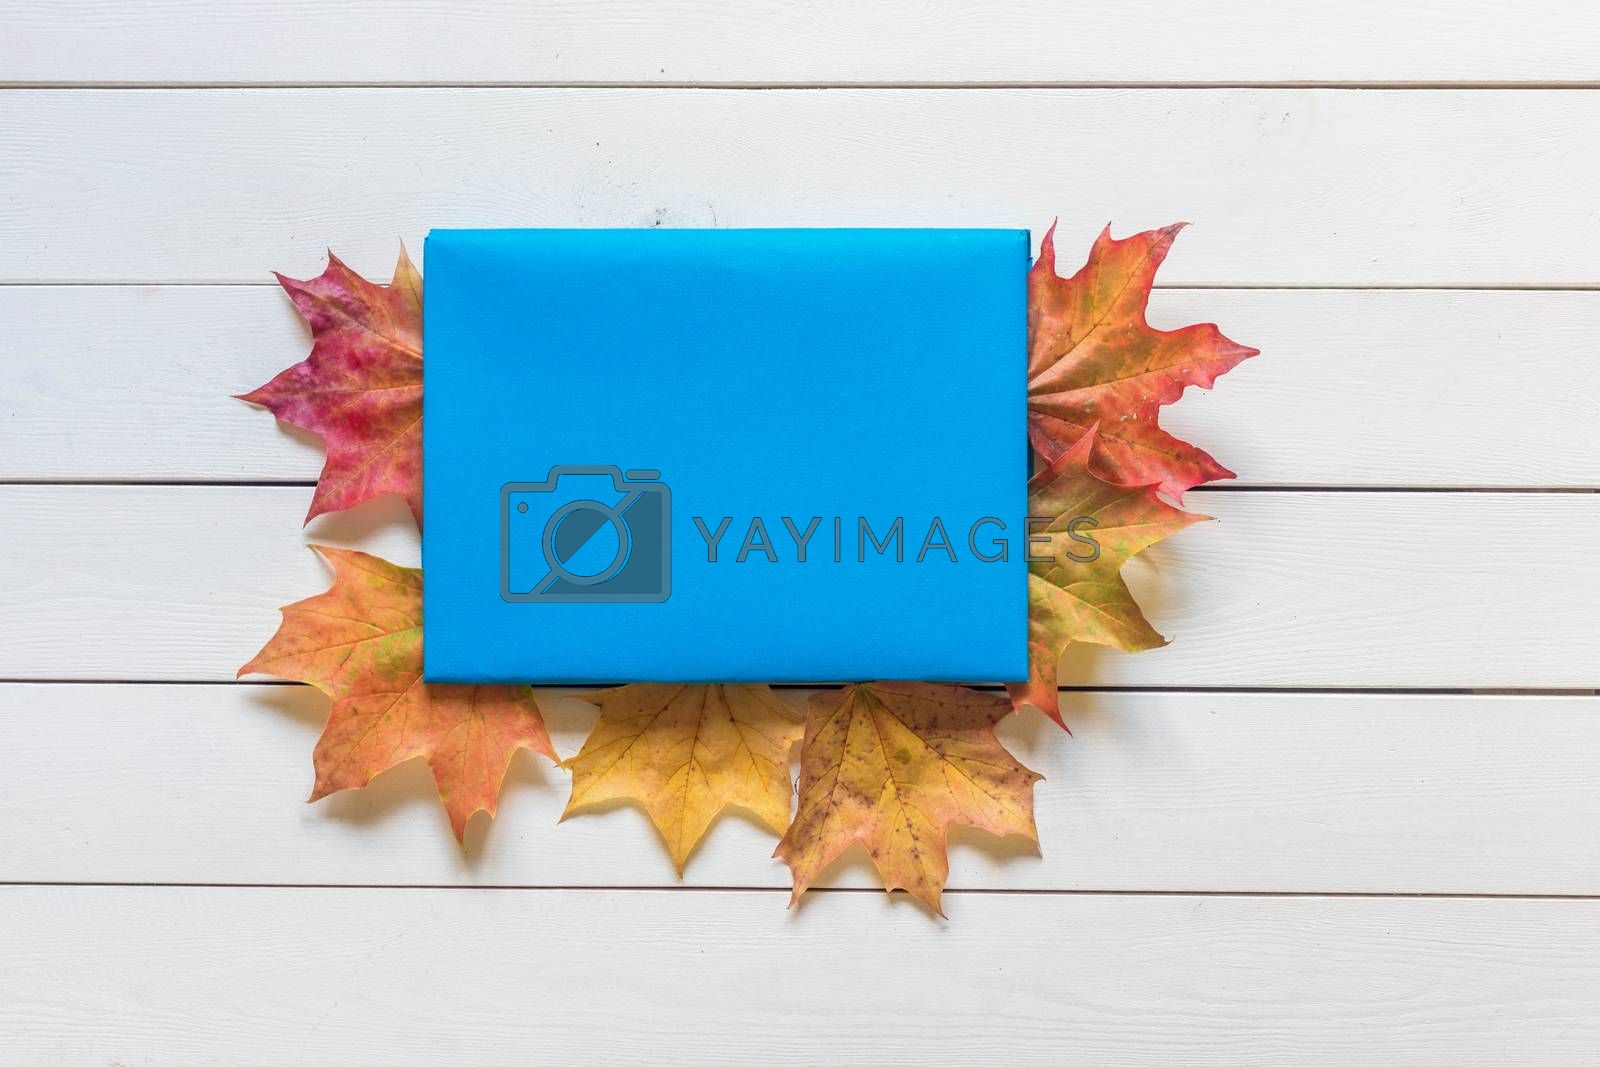 .The book with a bookmark of fallen leaves on a wooden background.